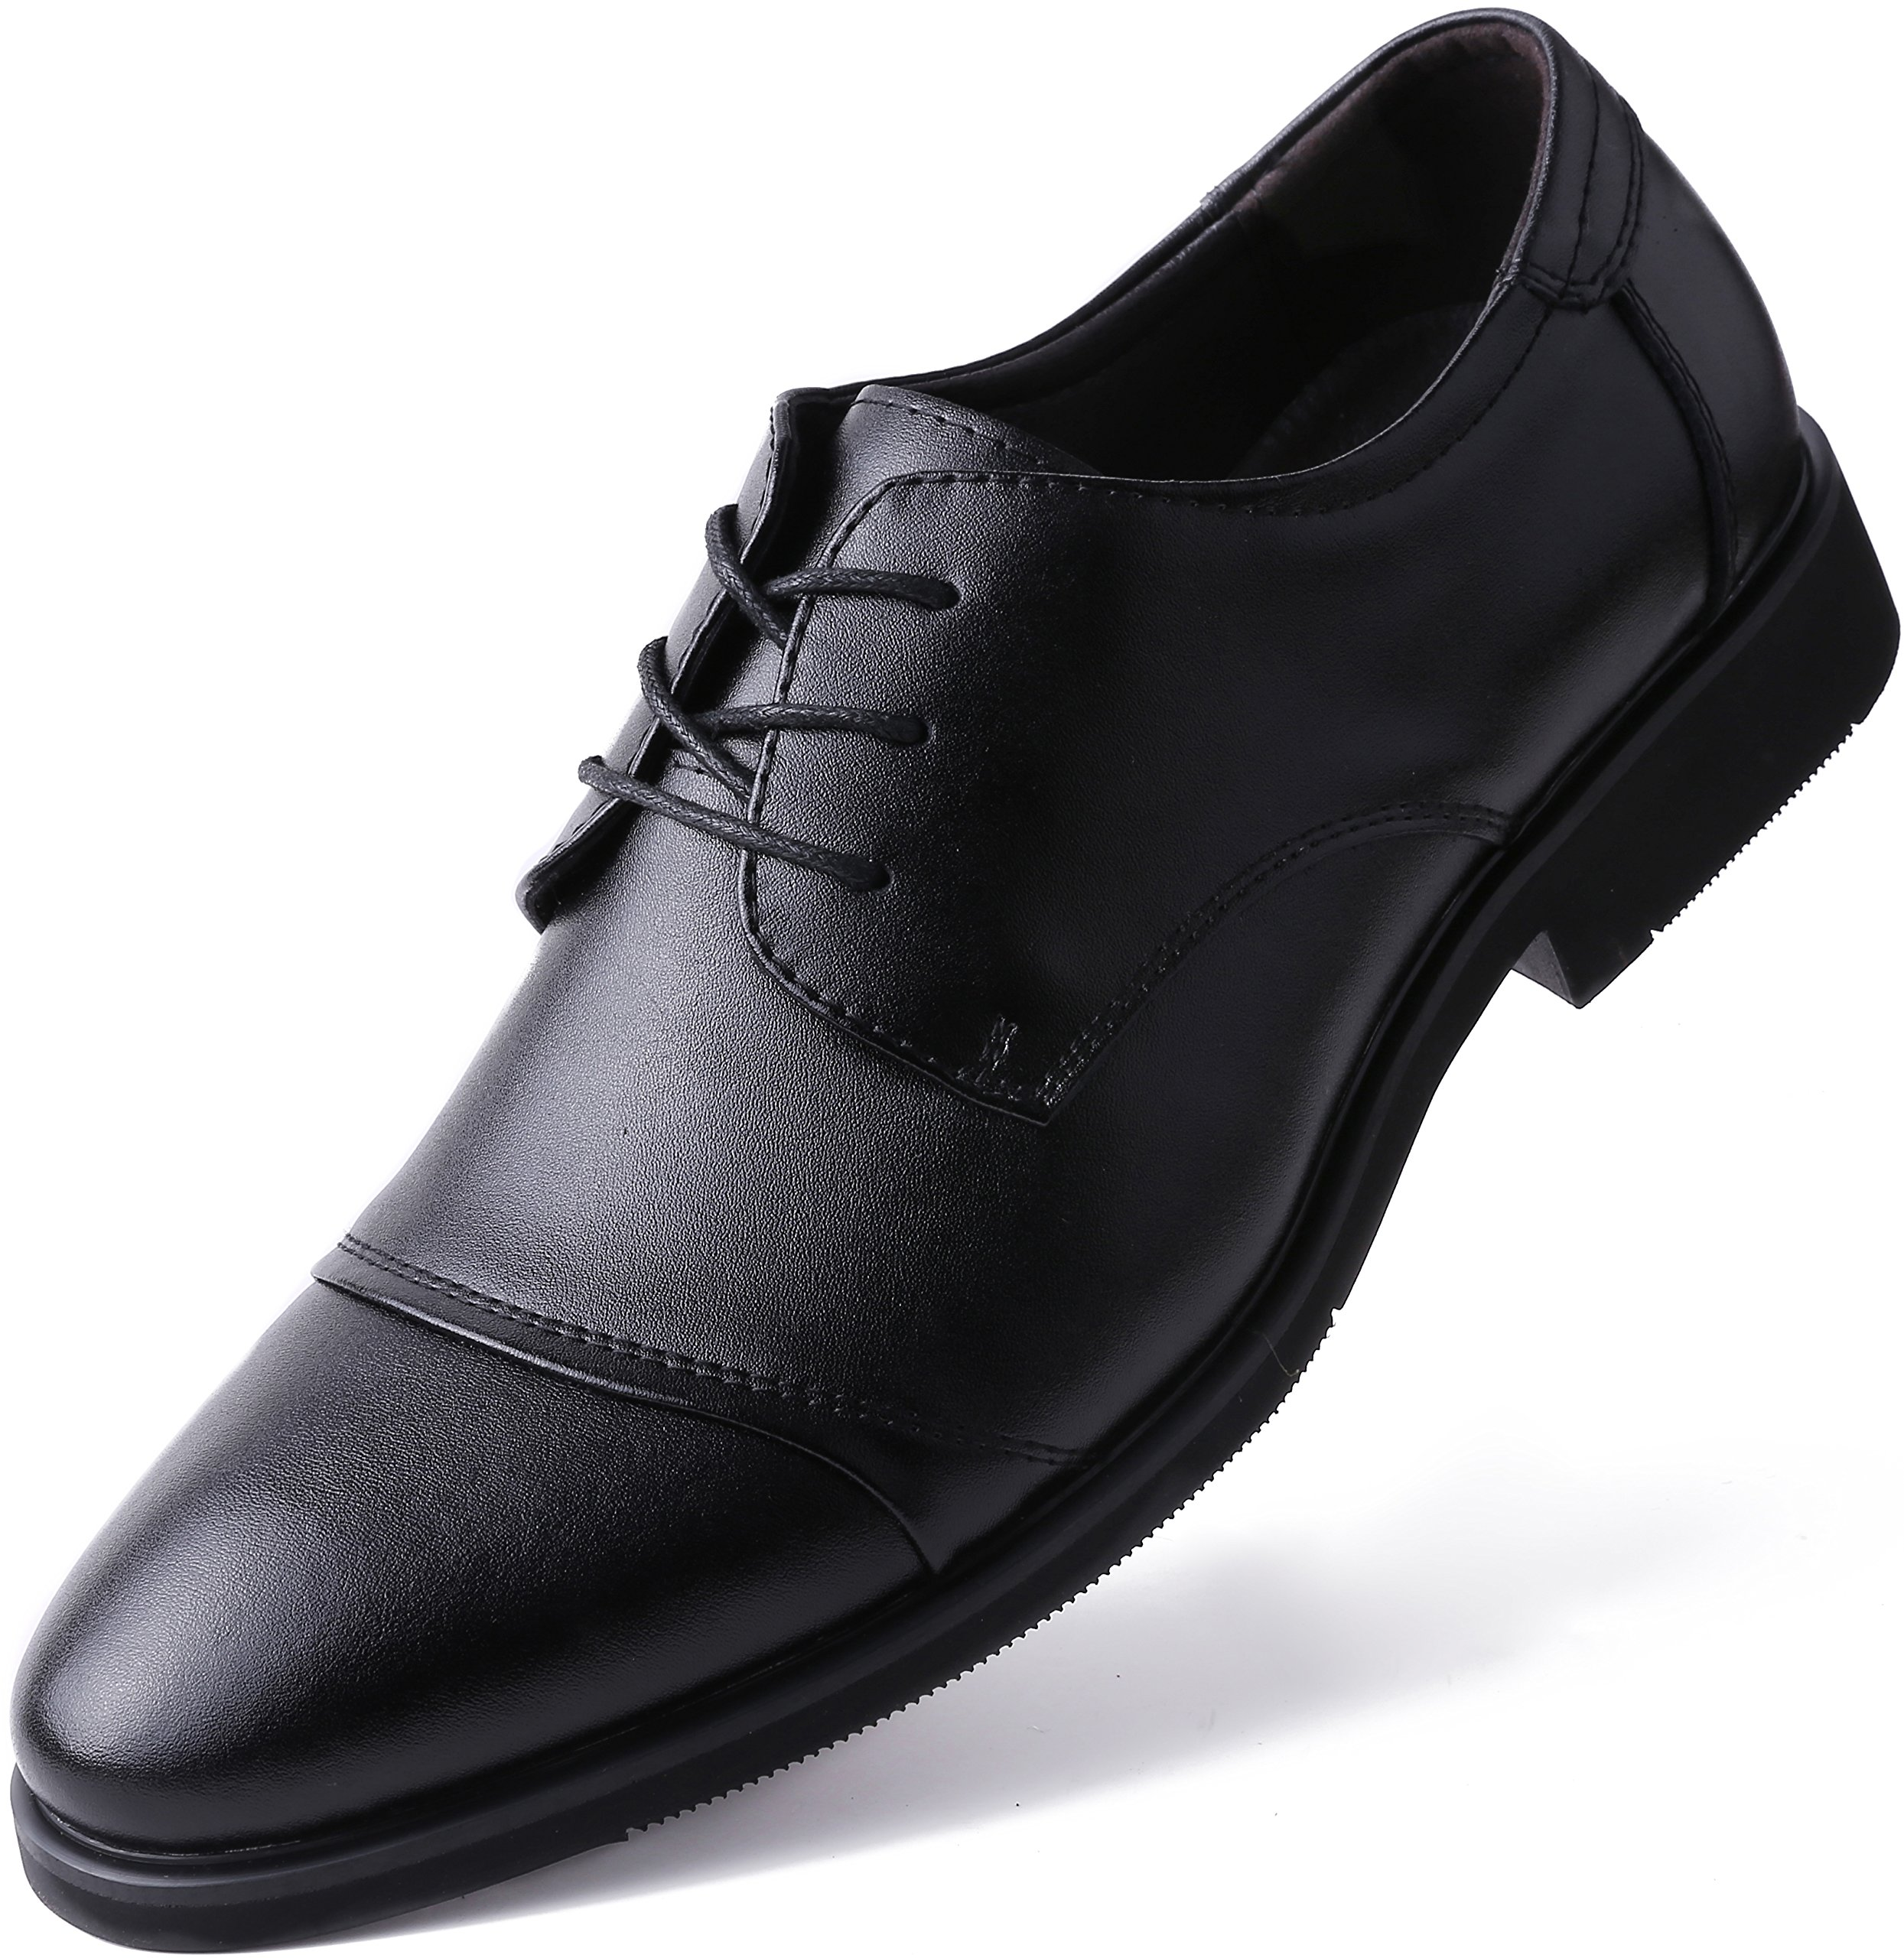 Marino Oxford Dress Shoes for Men - Formal Leather Mens Shoes - Black - Cap-Toe - 9 D(M) US by Marino Avenue